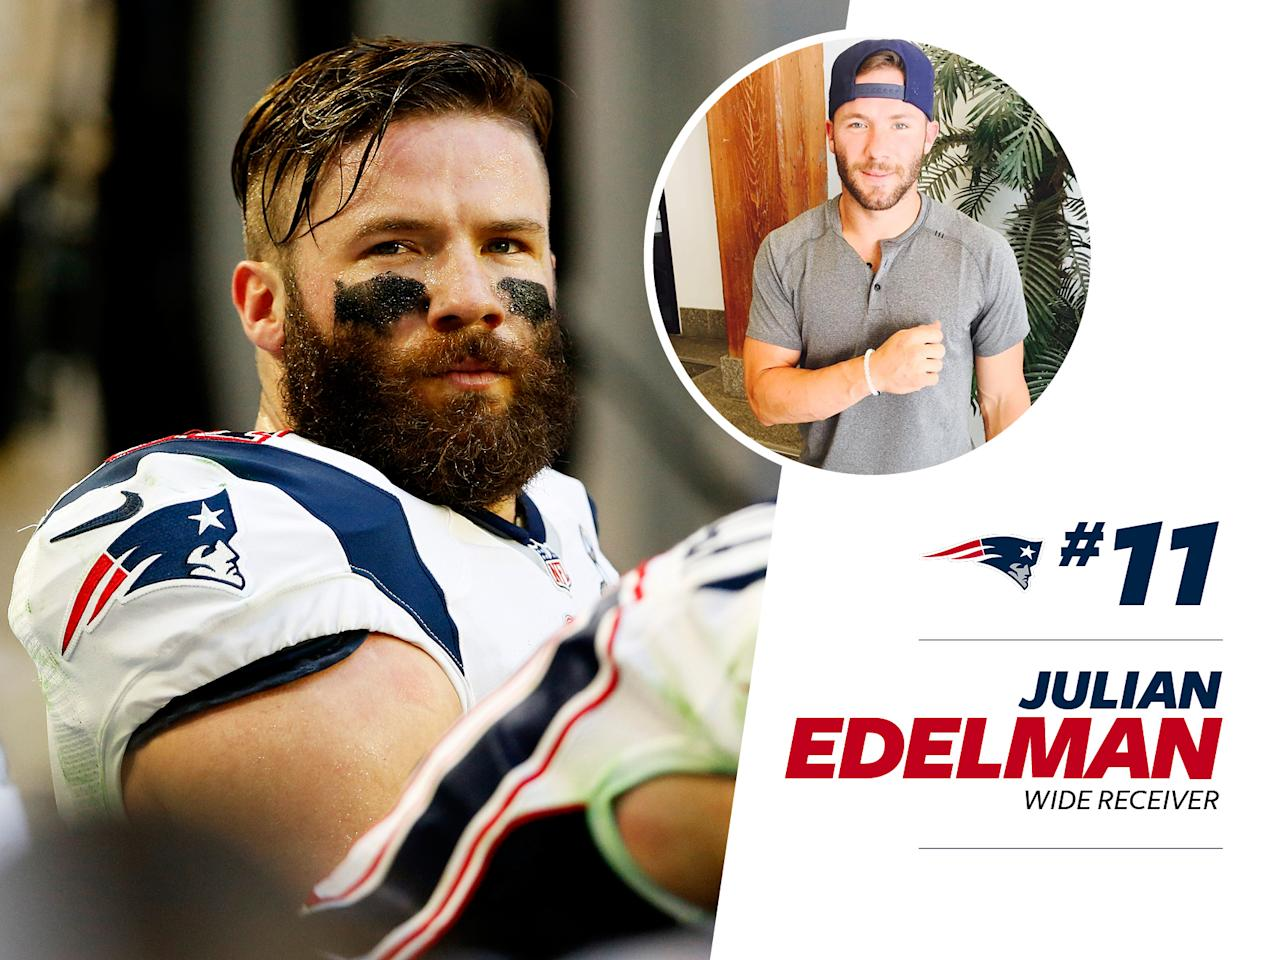 """<p>Julian Edelman is a fashion world darling, according to <a rel=""""nofollow"""" href=""""http://www.vogue.com/13353056/julian-edelman-new-england-patriots-nfl-style/""""><em>Vogue</em></a>. The Pats wide receiver opts for streetwear brands like Kith and Public School, and acts as a spokesperson for Puma. </p>"""